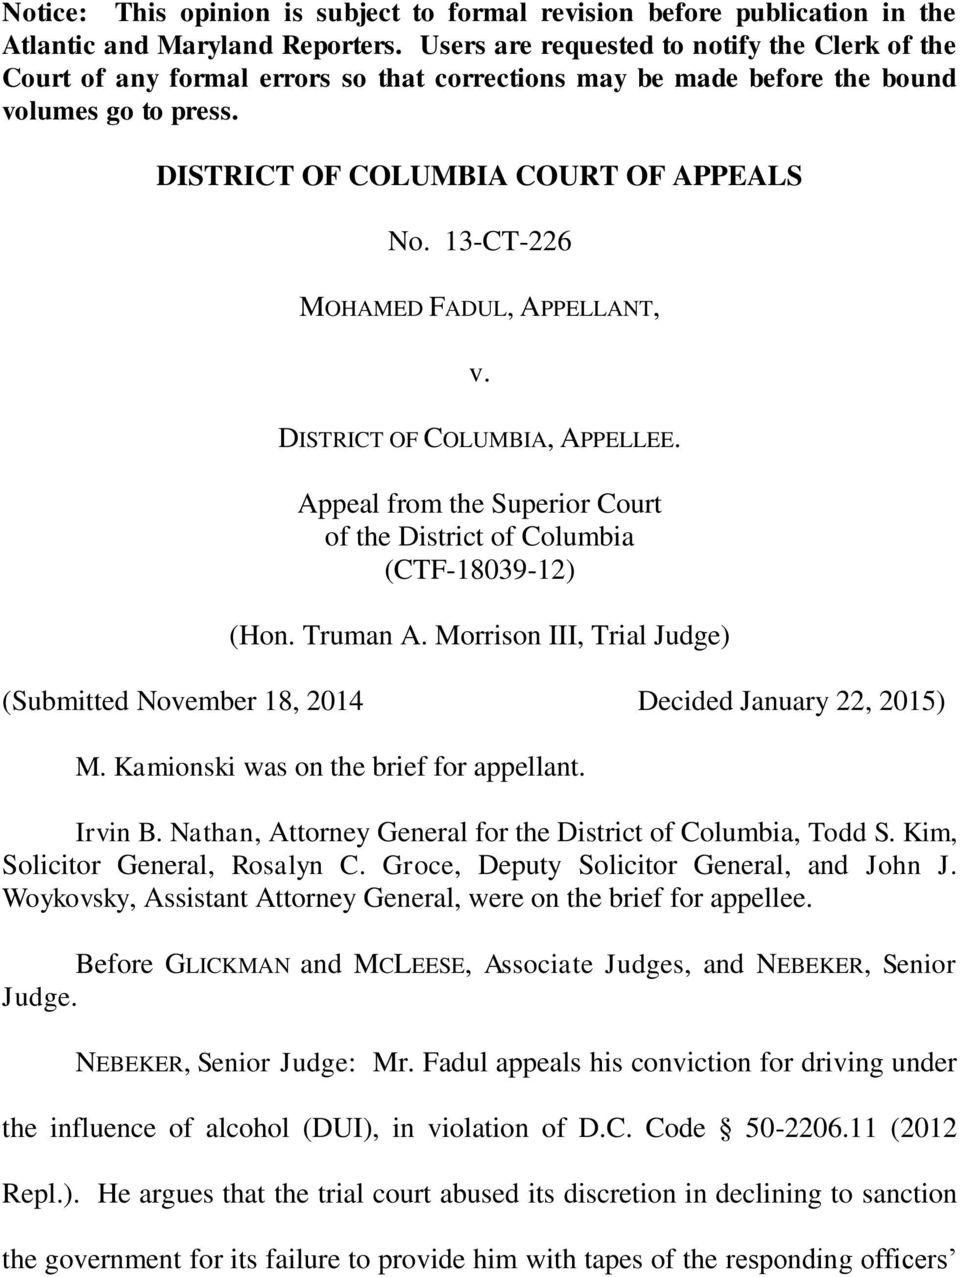 13-CT-226 MOHAMED FADUL, APPELLANT, v. DISTRICT OF COLUMBIA, APPELLEE. Appeal from the Superior Court of the District of Columbia (CTF-18039-12) (Hon. Truman A.